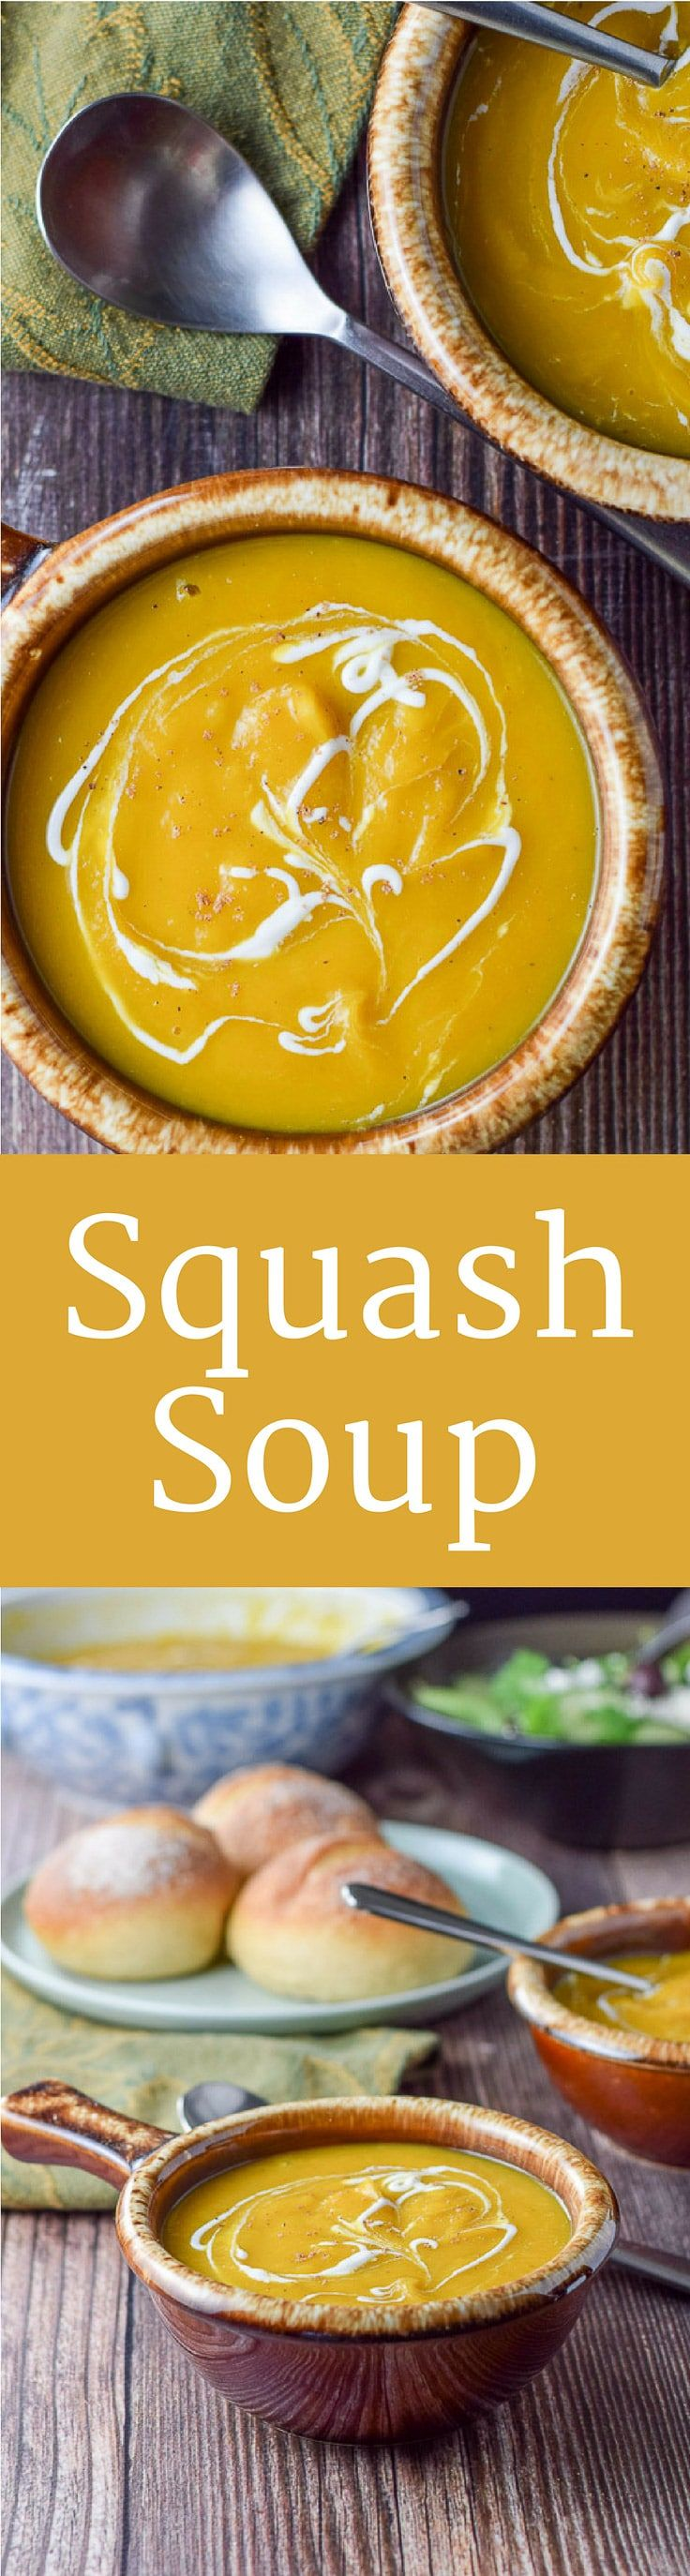 Scrumptious Squash Soup is so thick and hearty that you could make a meal out of it. It's warm and comforting and delicious during the chilly seasons!!  https://ddel.co/squashsp via @dishesdelish